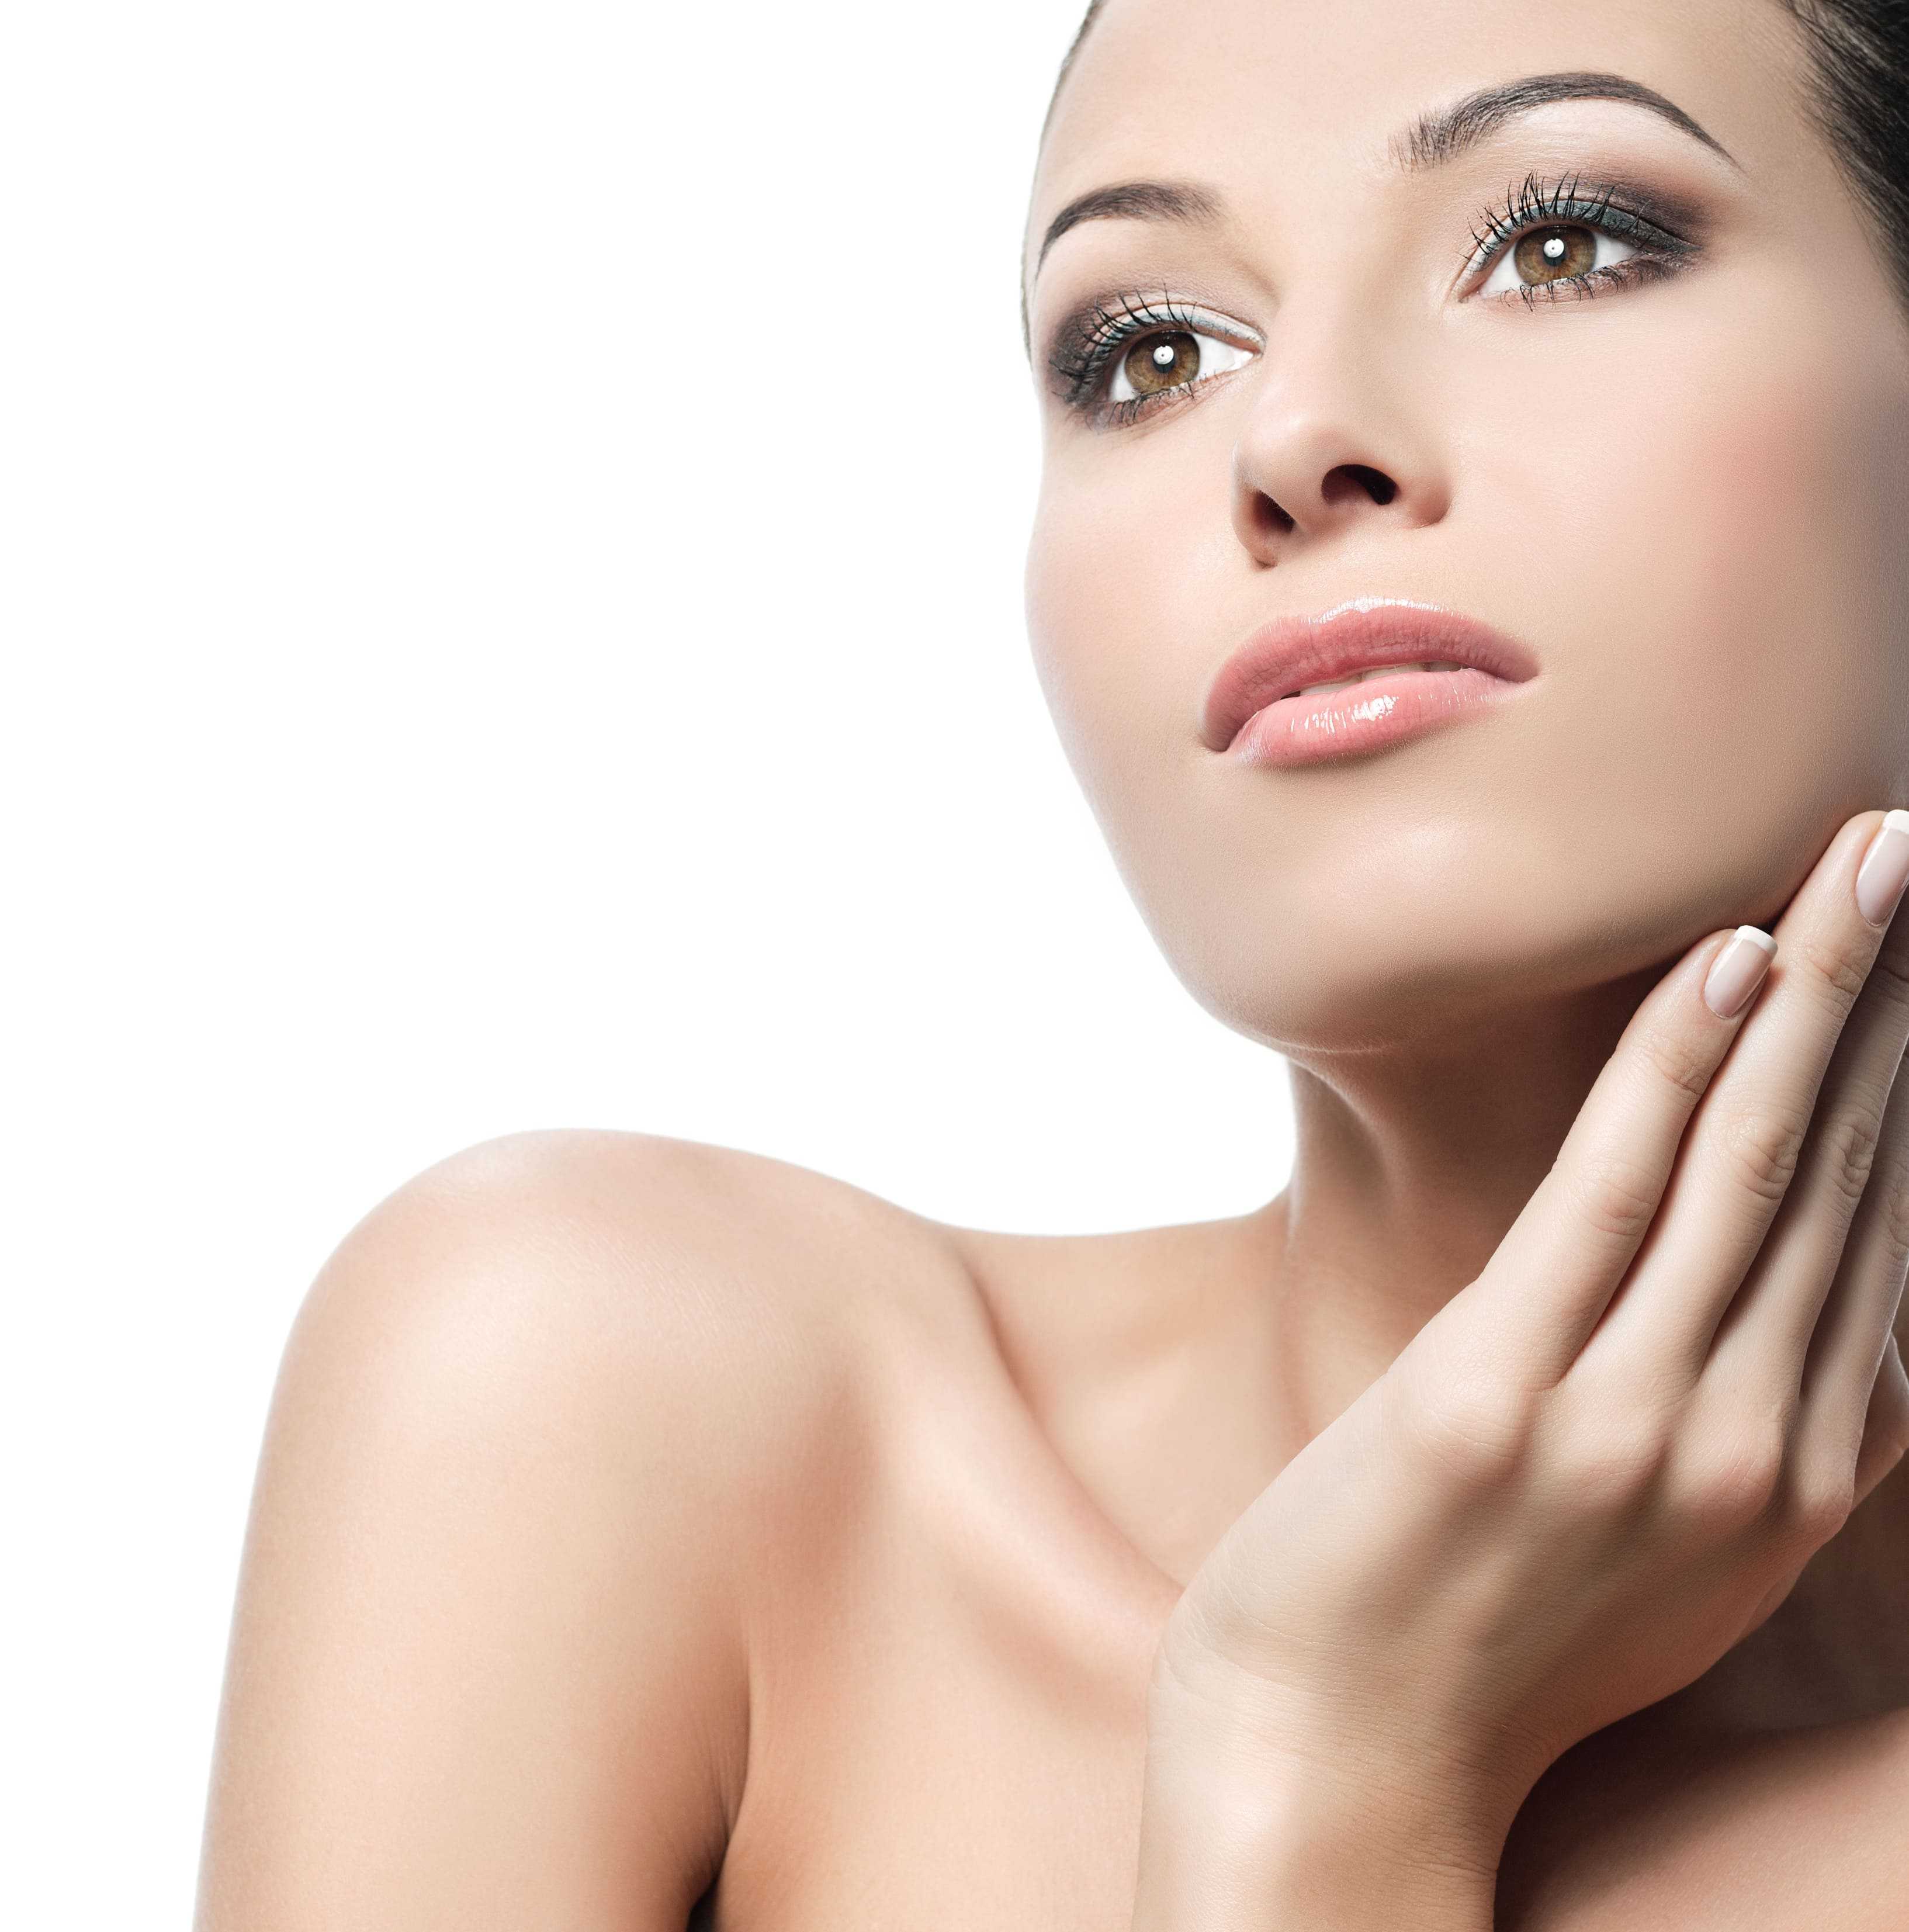 Superficial%E2%84%A2-CO2-min IPL PhotoFacial in Scottsdale